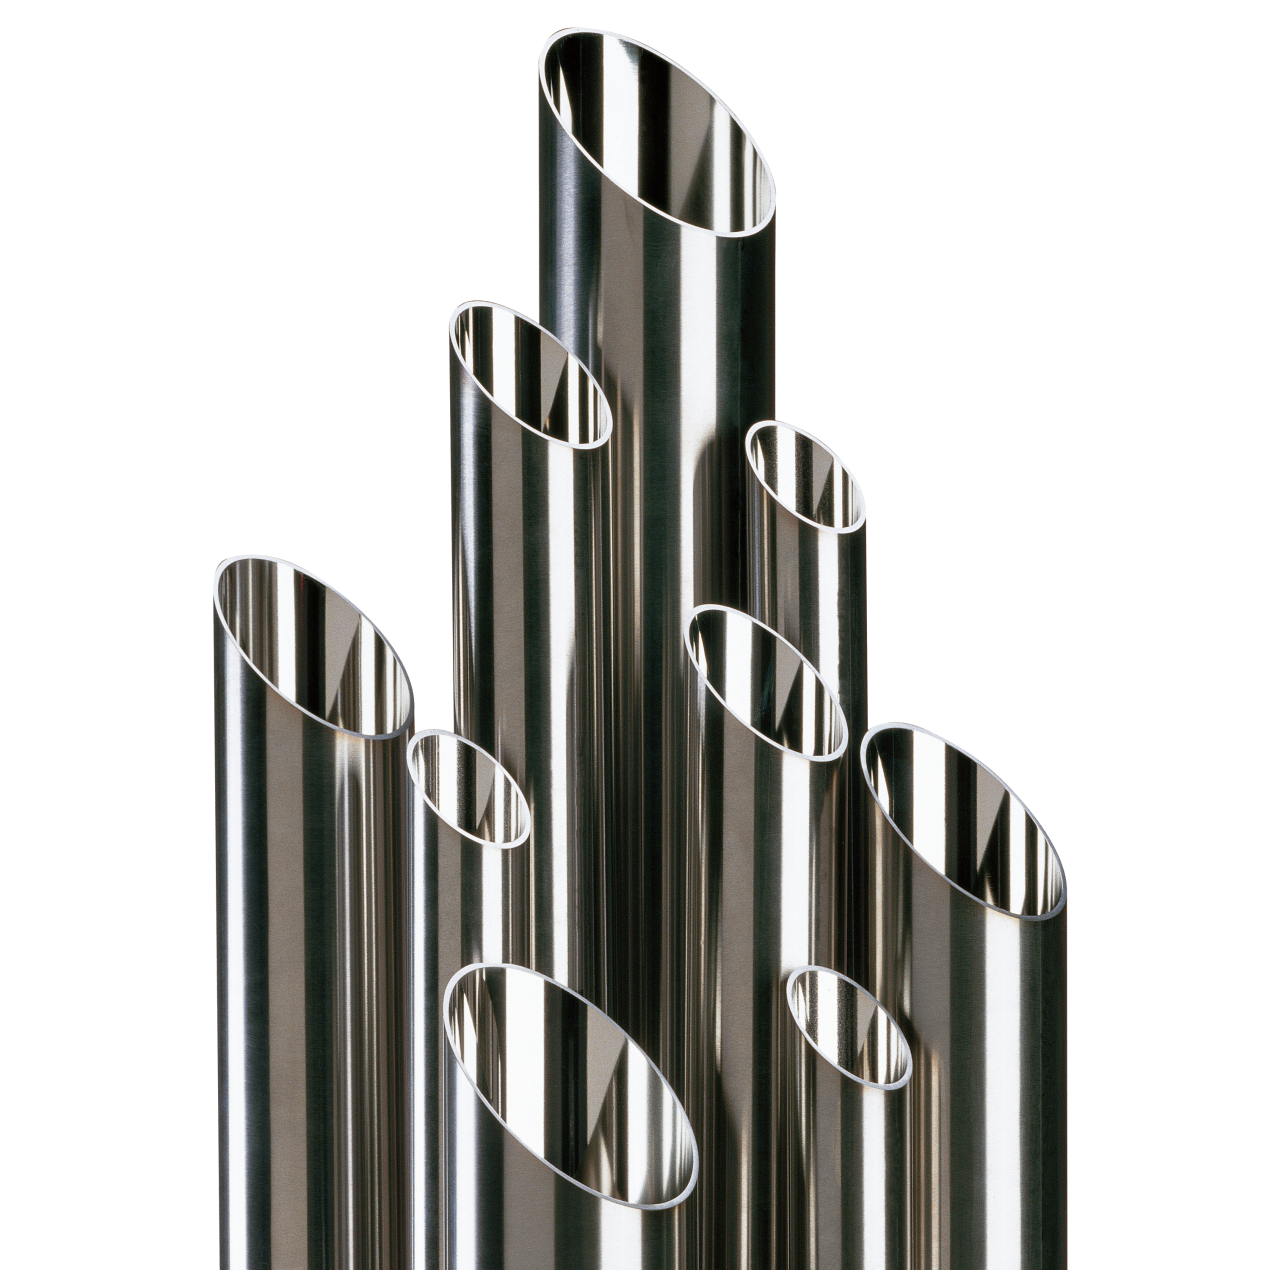 2 1 Stainless Steel Welded BPE Tubing 316L Polished 15Ra EP ID